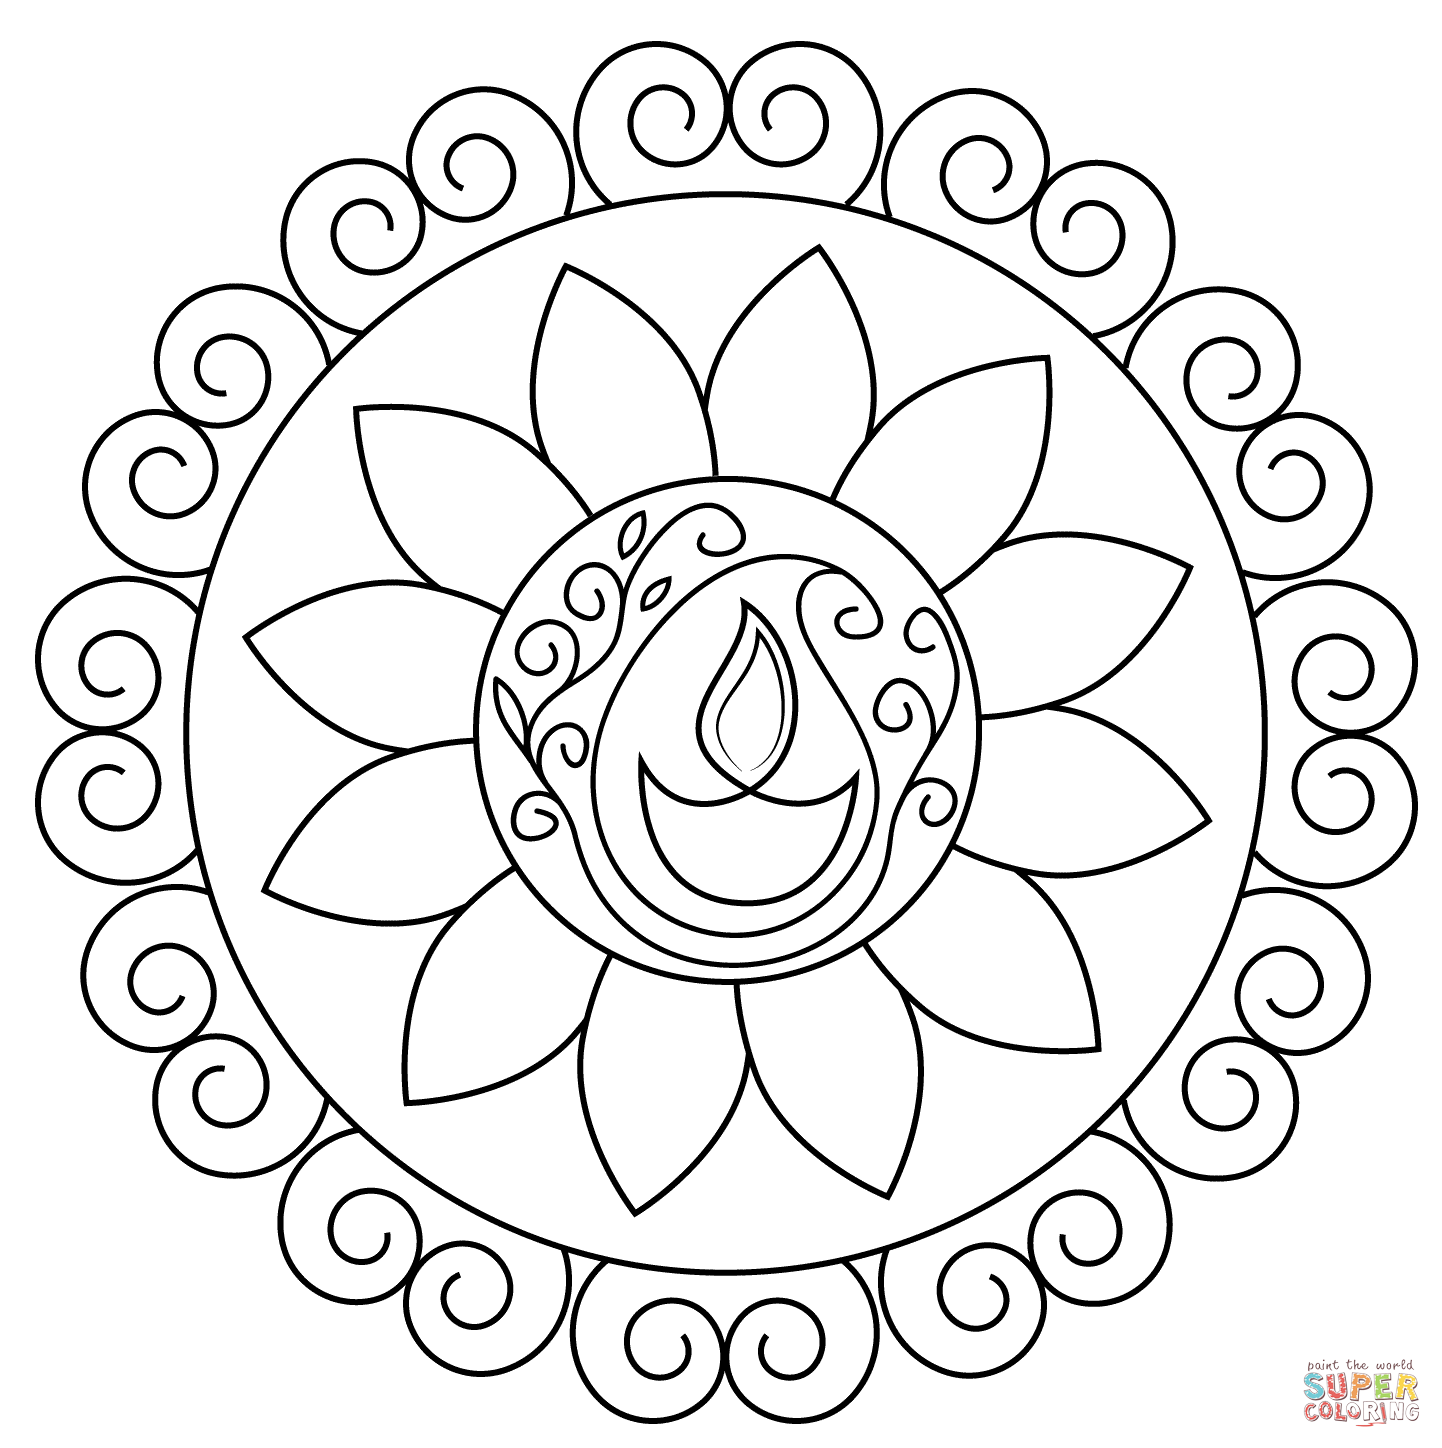 rangoli colouring pattern free printable rangoli coloring pages for your little one pattern rangoli colouring